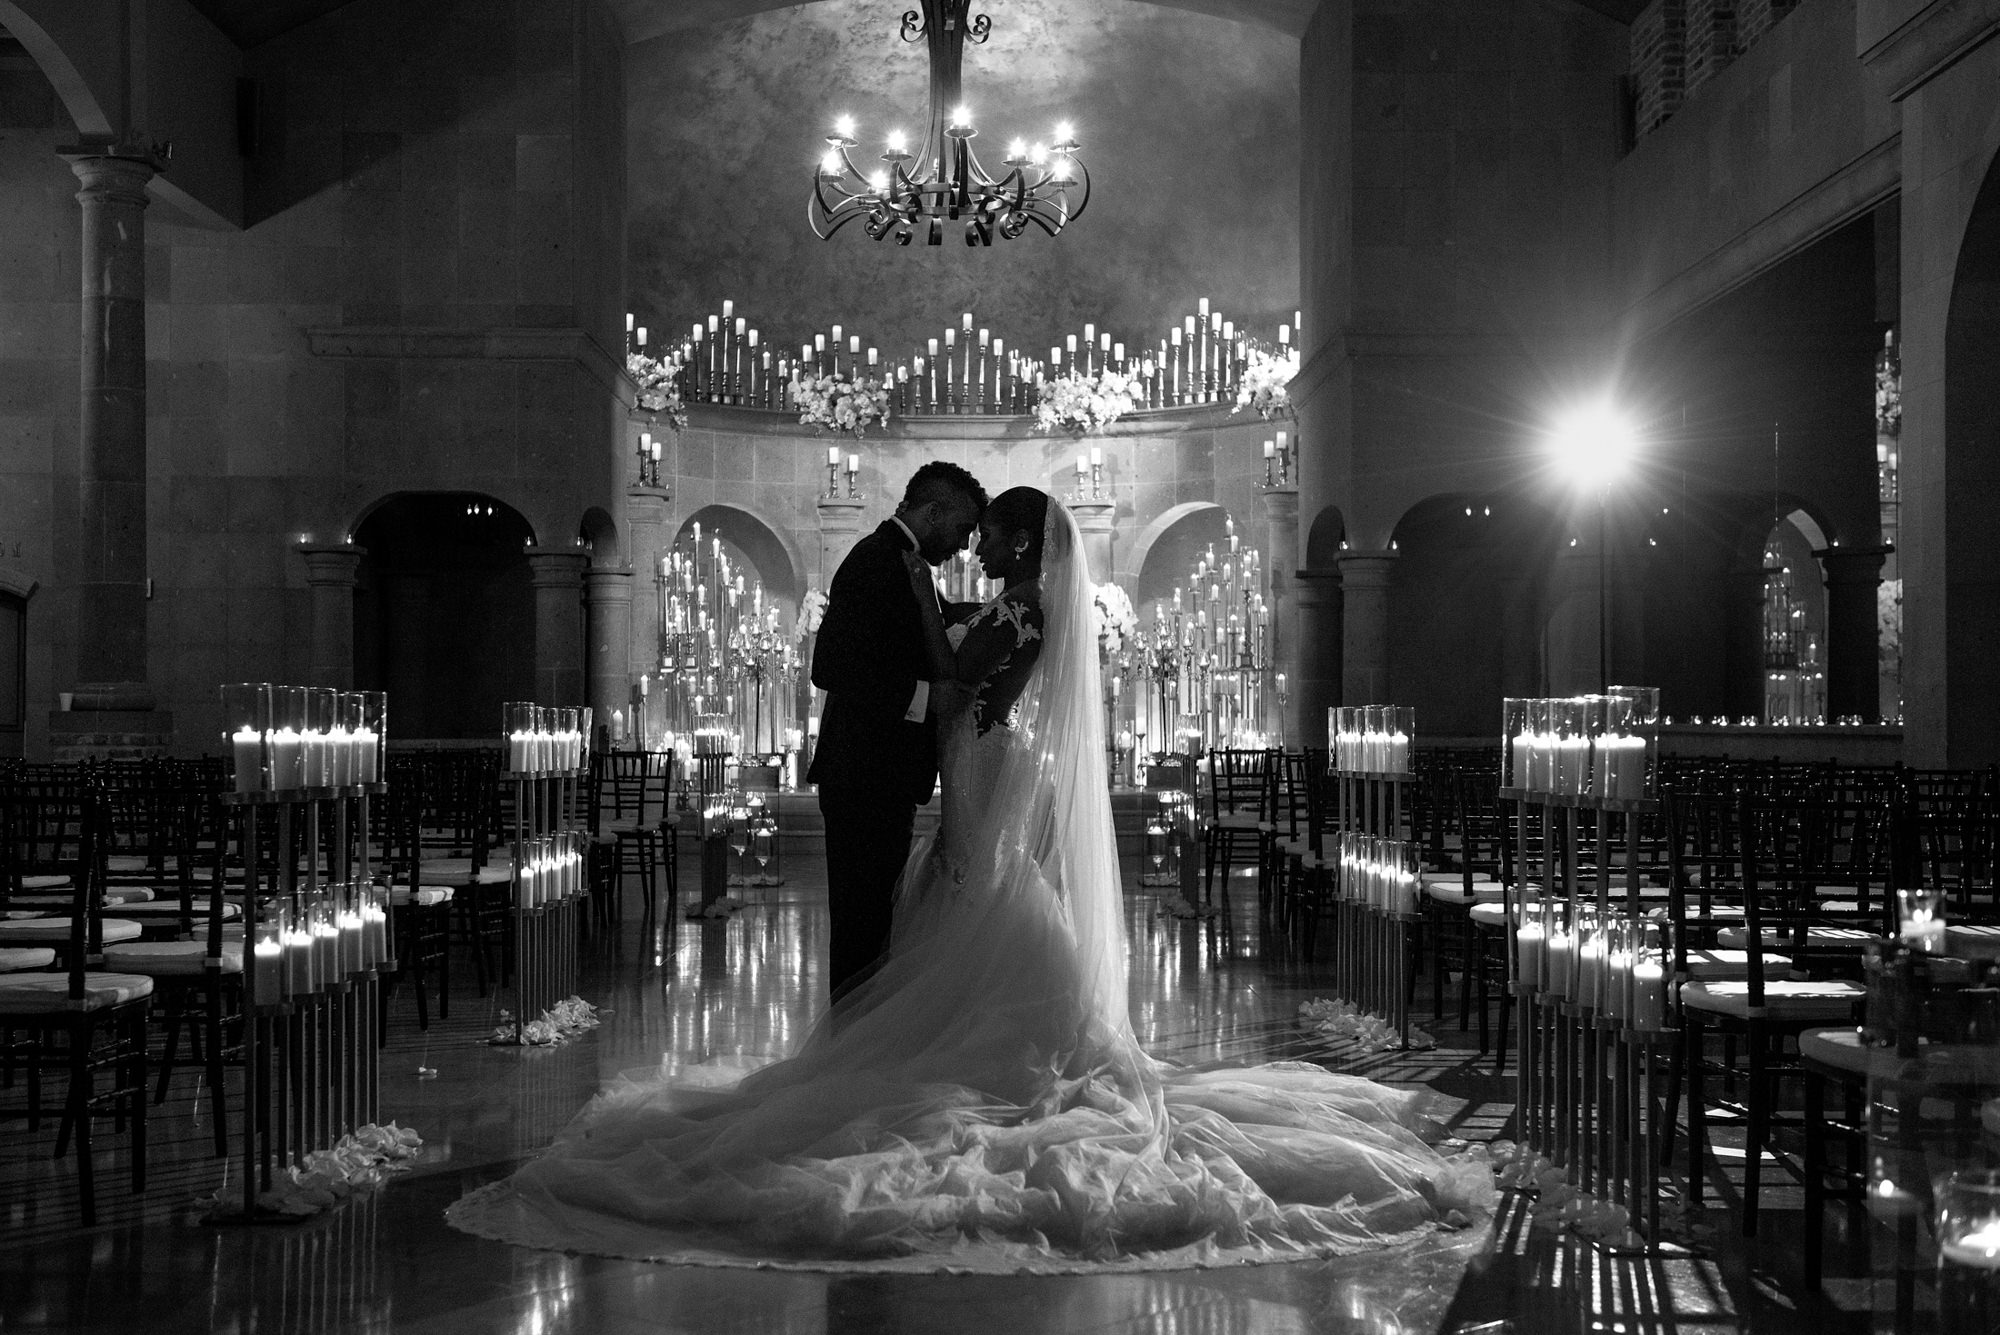 Couple embracing in candlelit church -  Morgan Lynn Photography